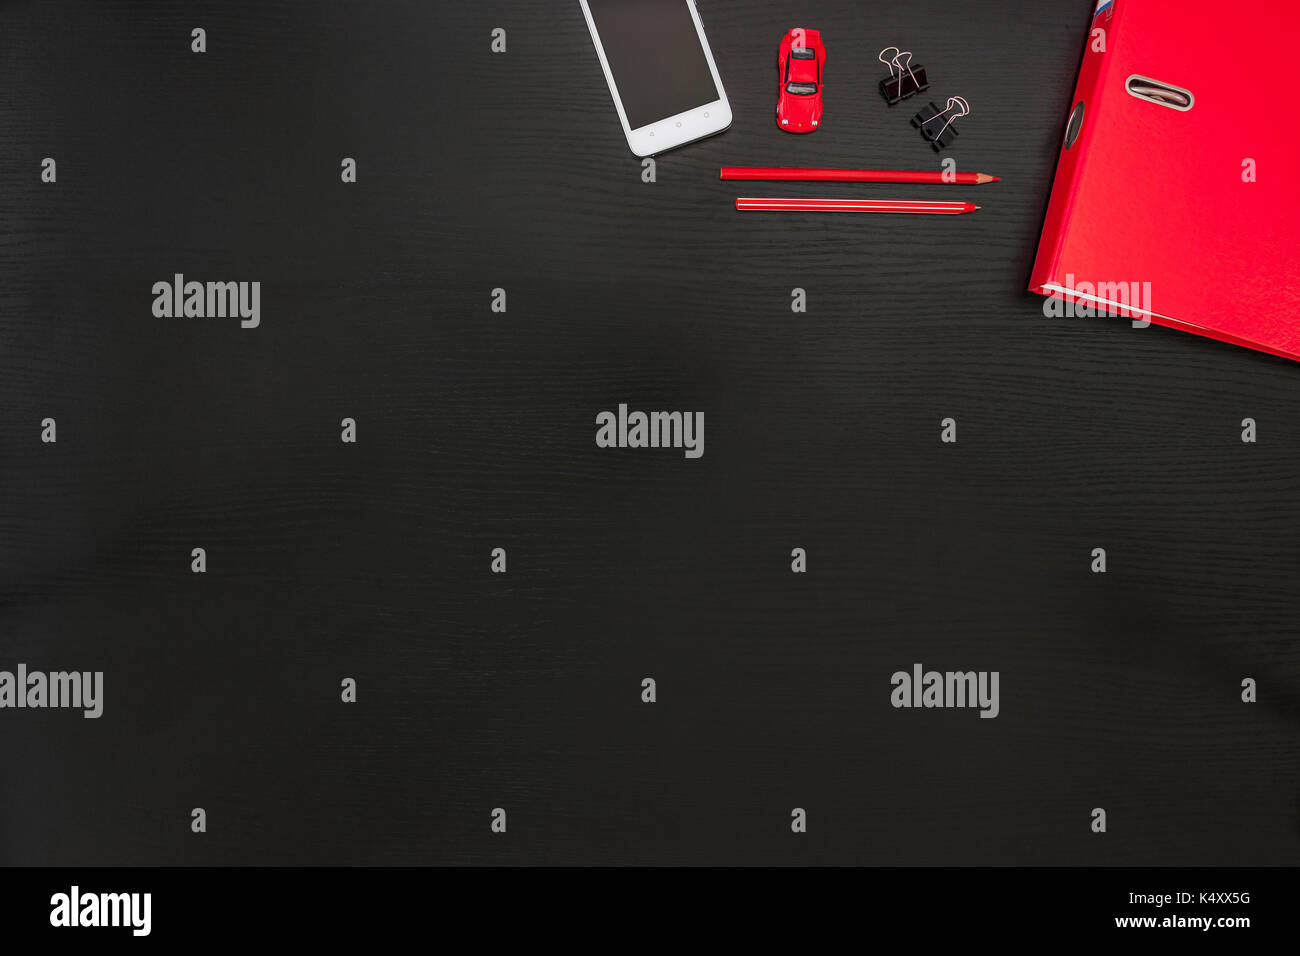 Download 900 Background Black Red White HD Terbaru